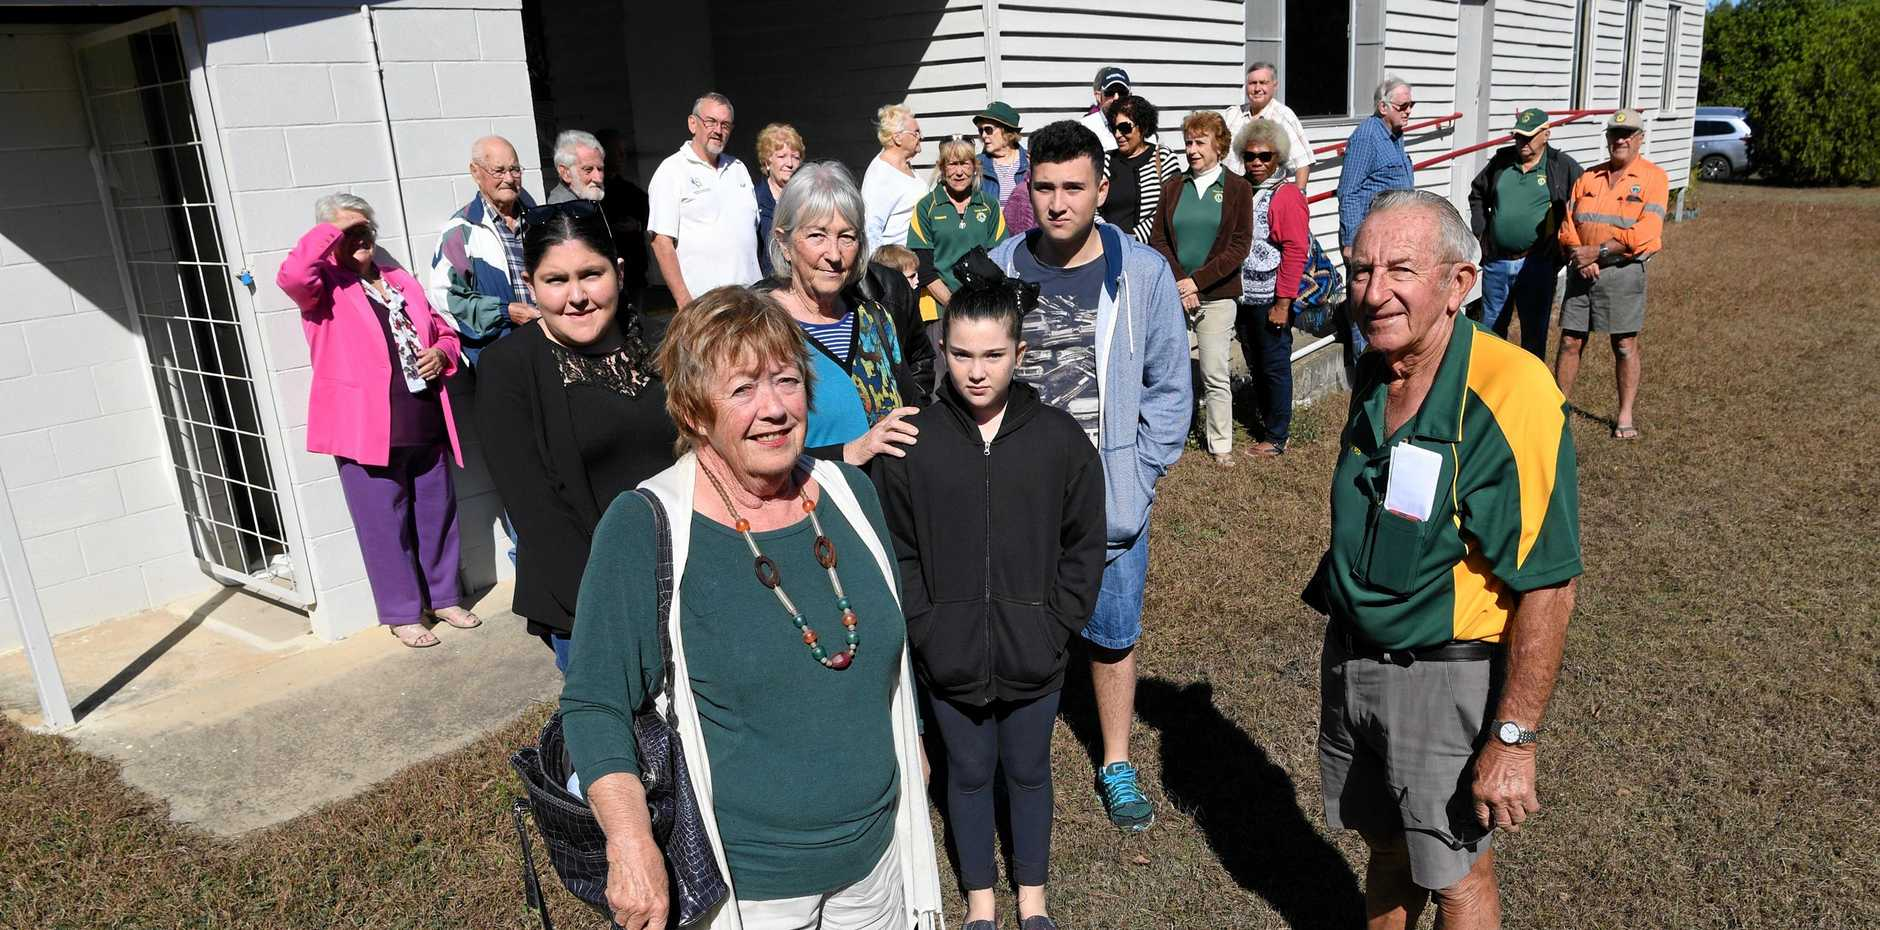 Moore Park Beach residents fight St Johns for community hall | News Mail